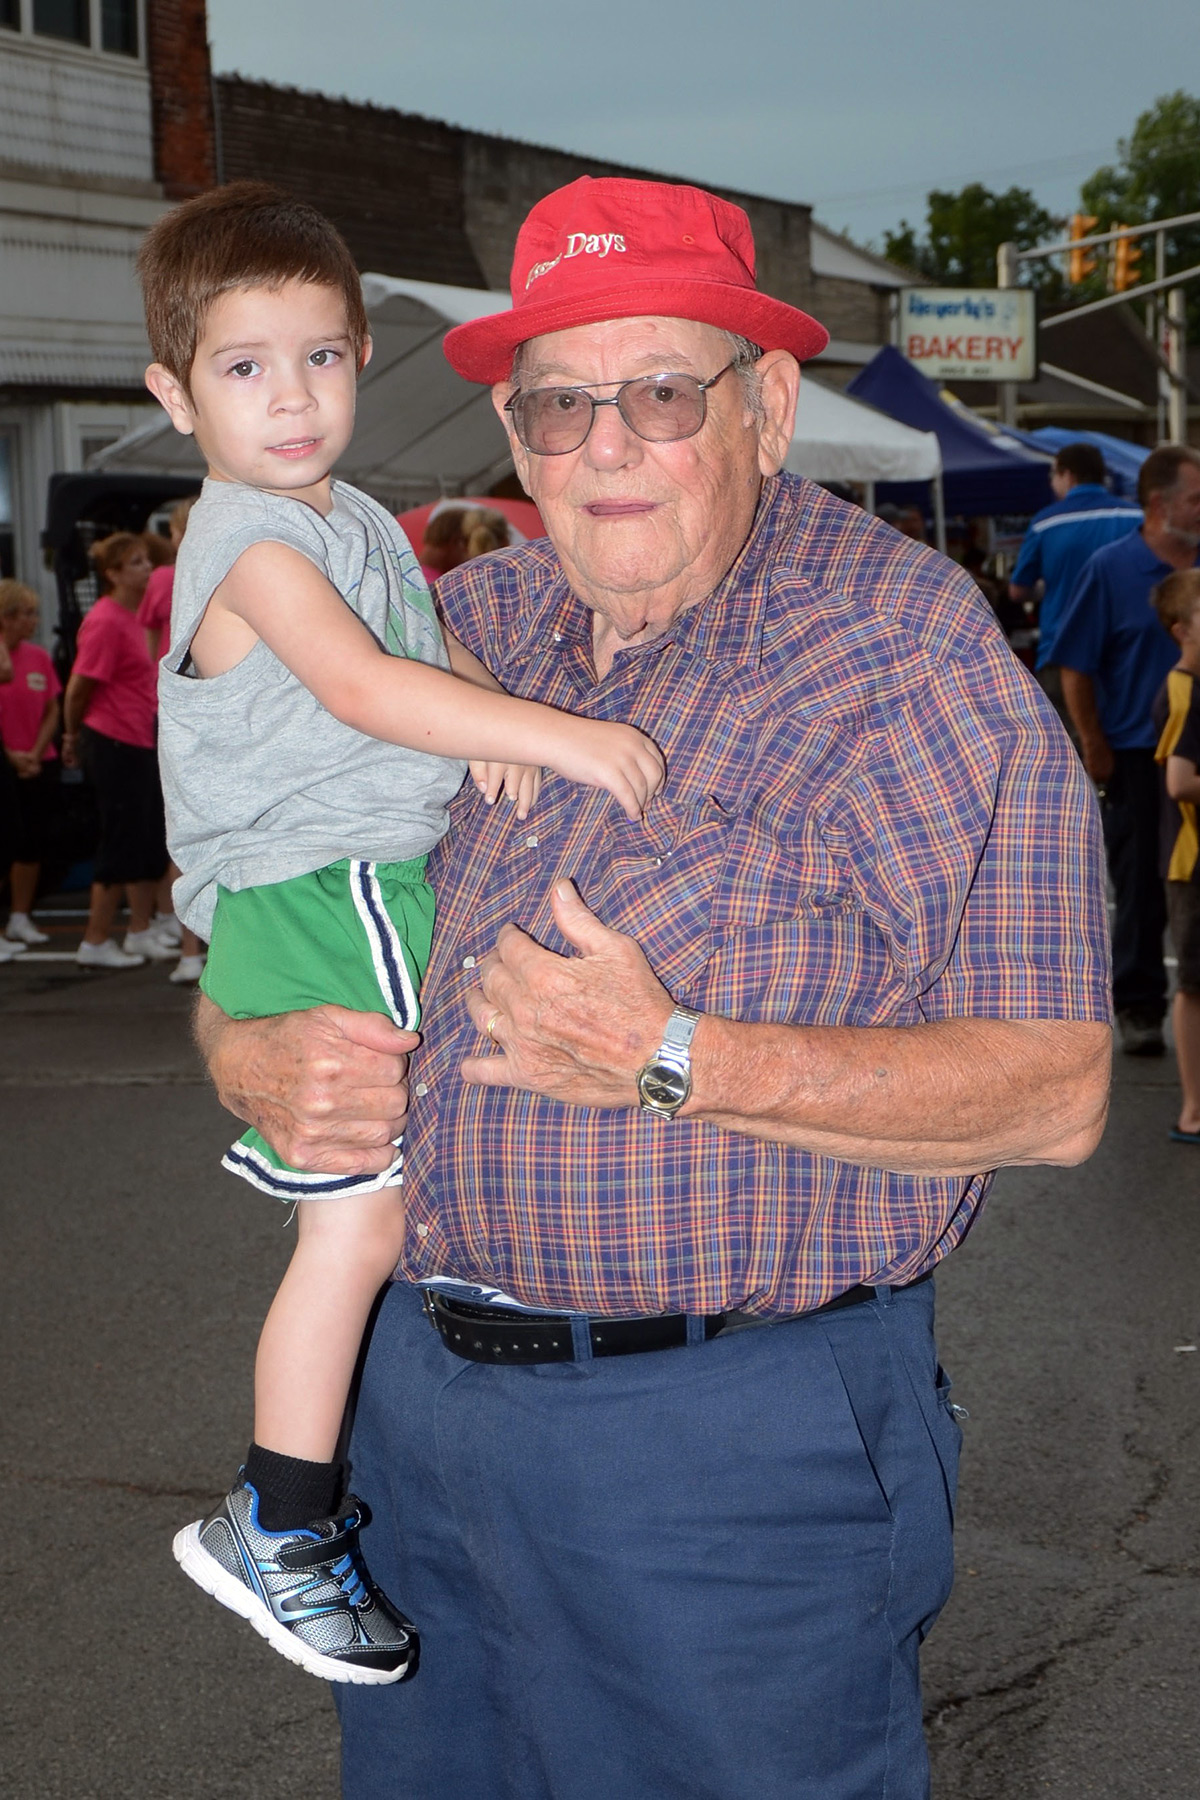 Making Multi-Generational Memories at the Midway